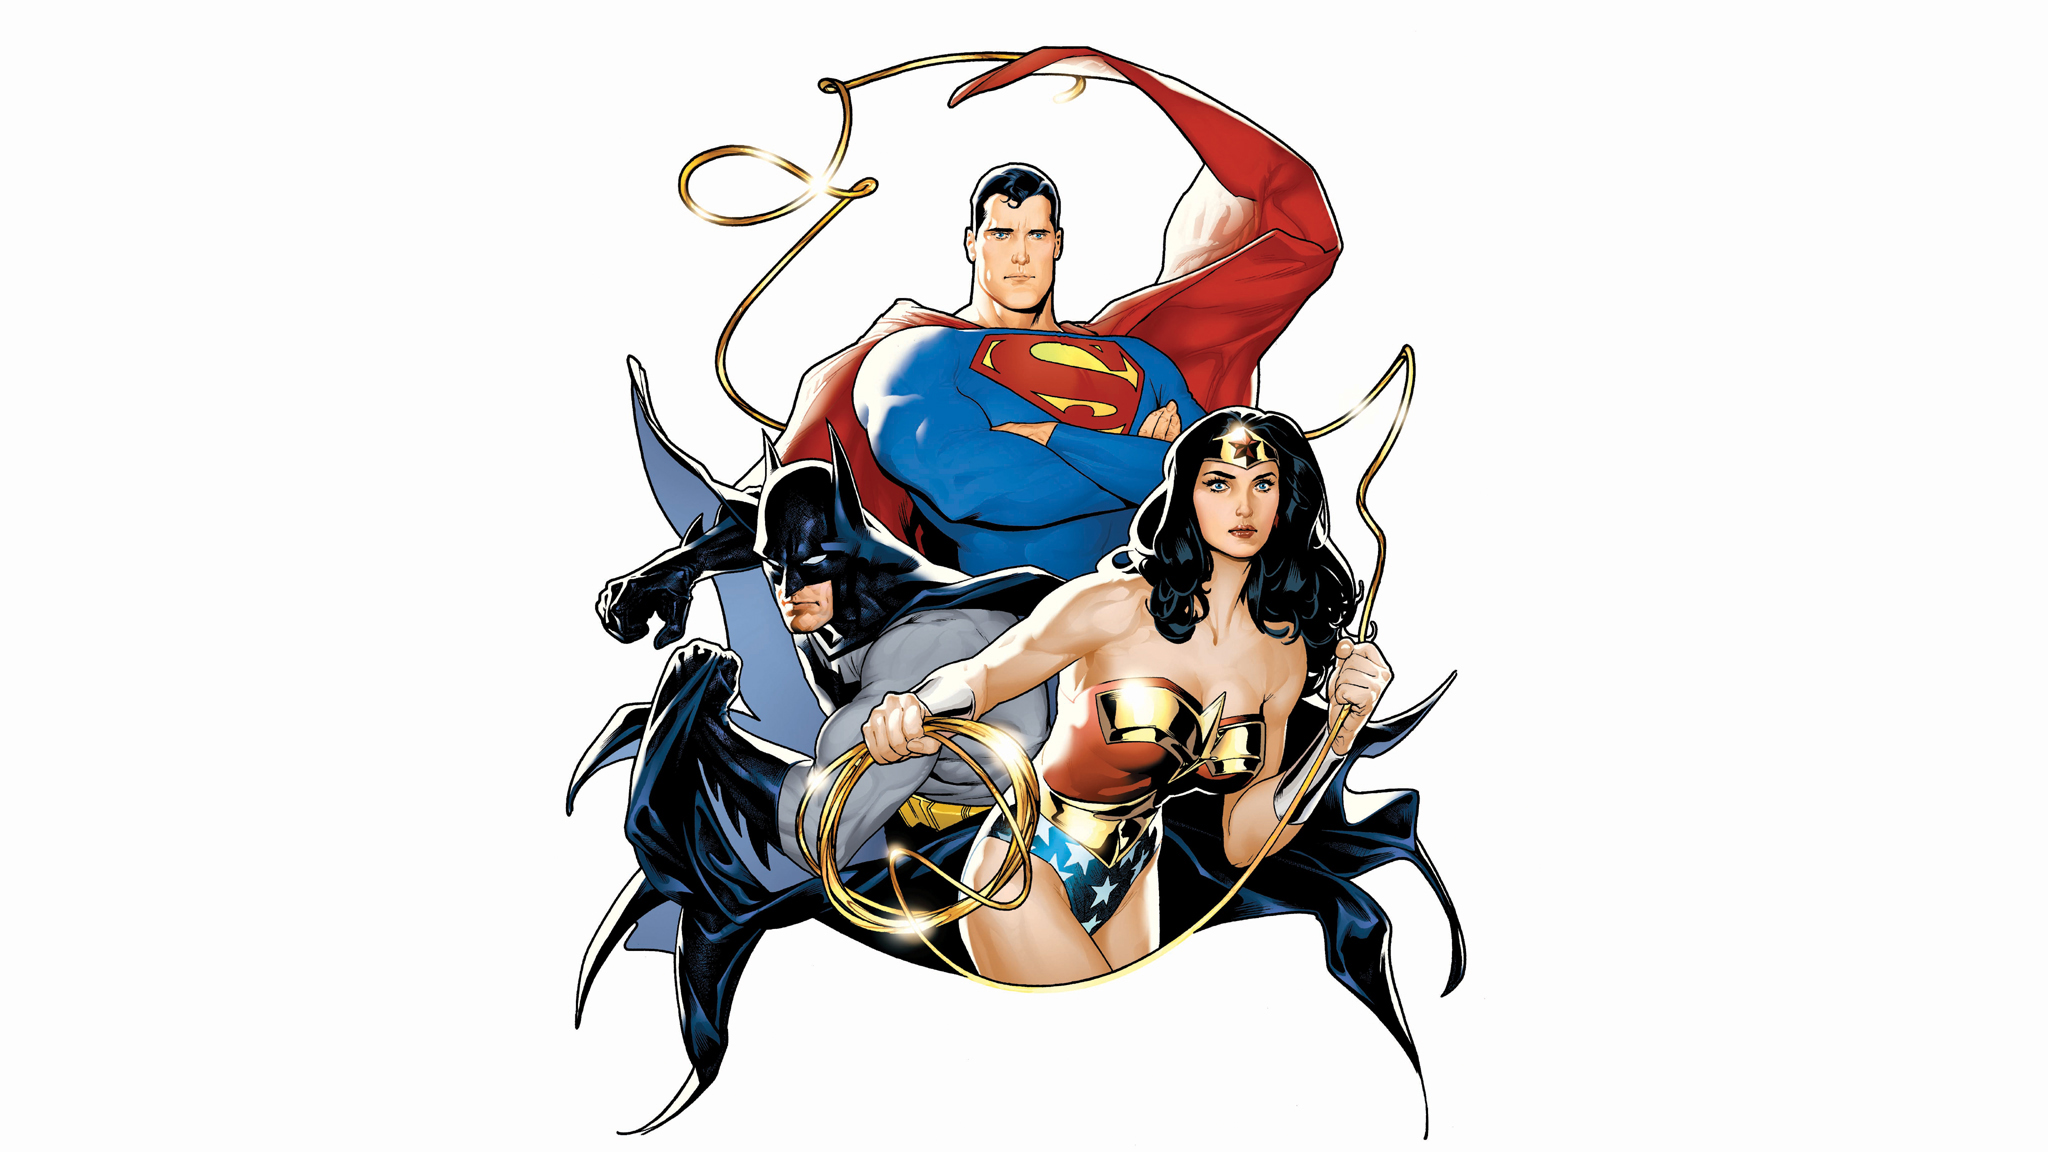 Comics - Justice League - Batman - Superman - Wonder Woman Wallpaper